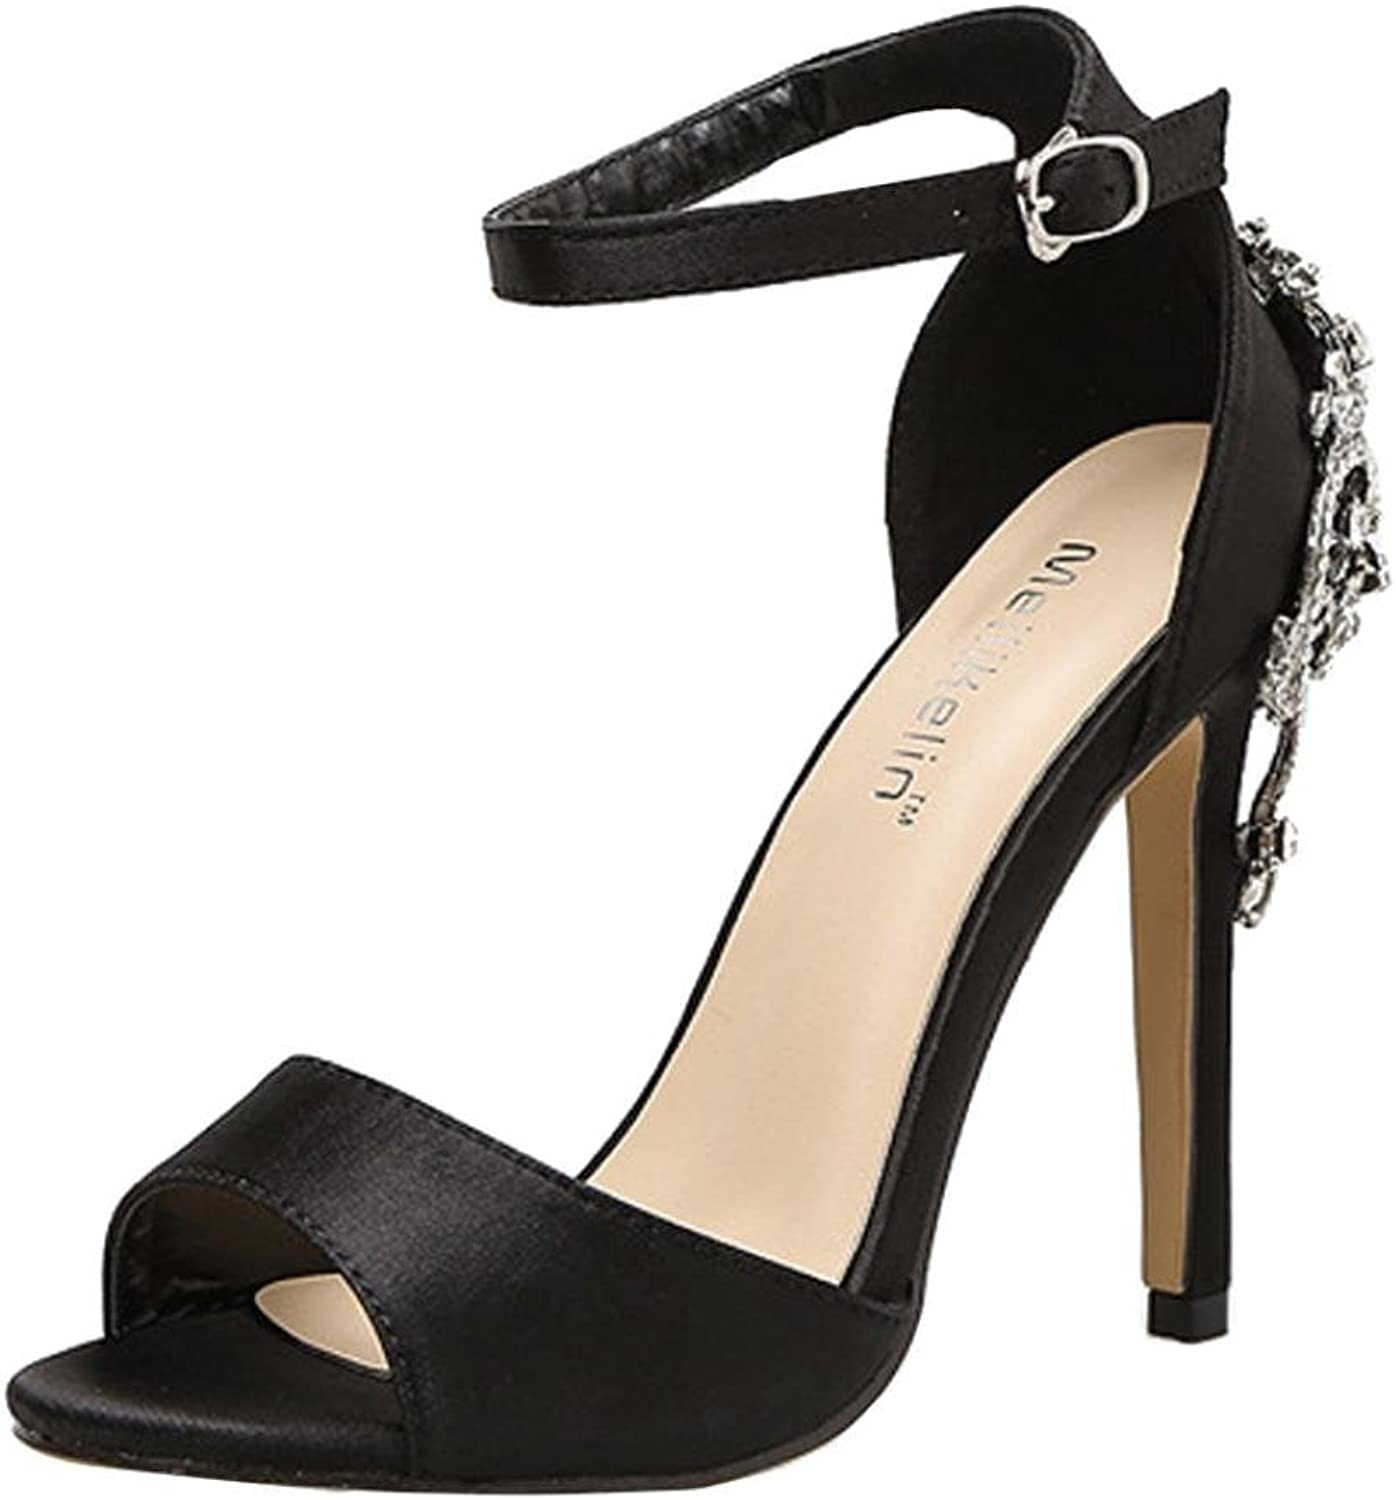 Women's Ankle Buckle Strappy Sandals Luxury Diamond Chunky Block High Heel - Formal, Wedding, Party Simple Classic Pump Summer (US 6, Black)